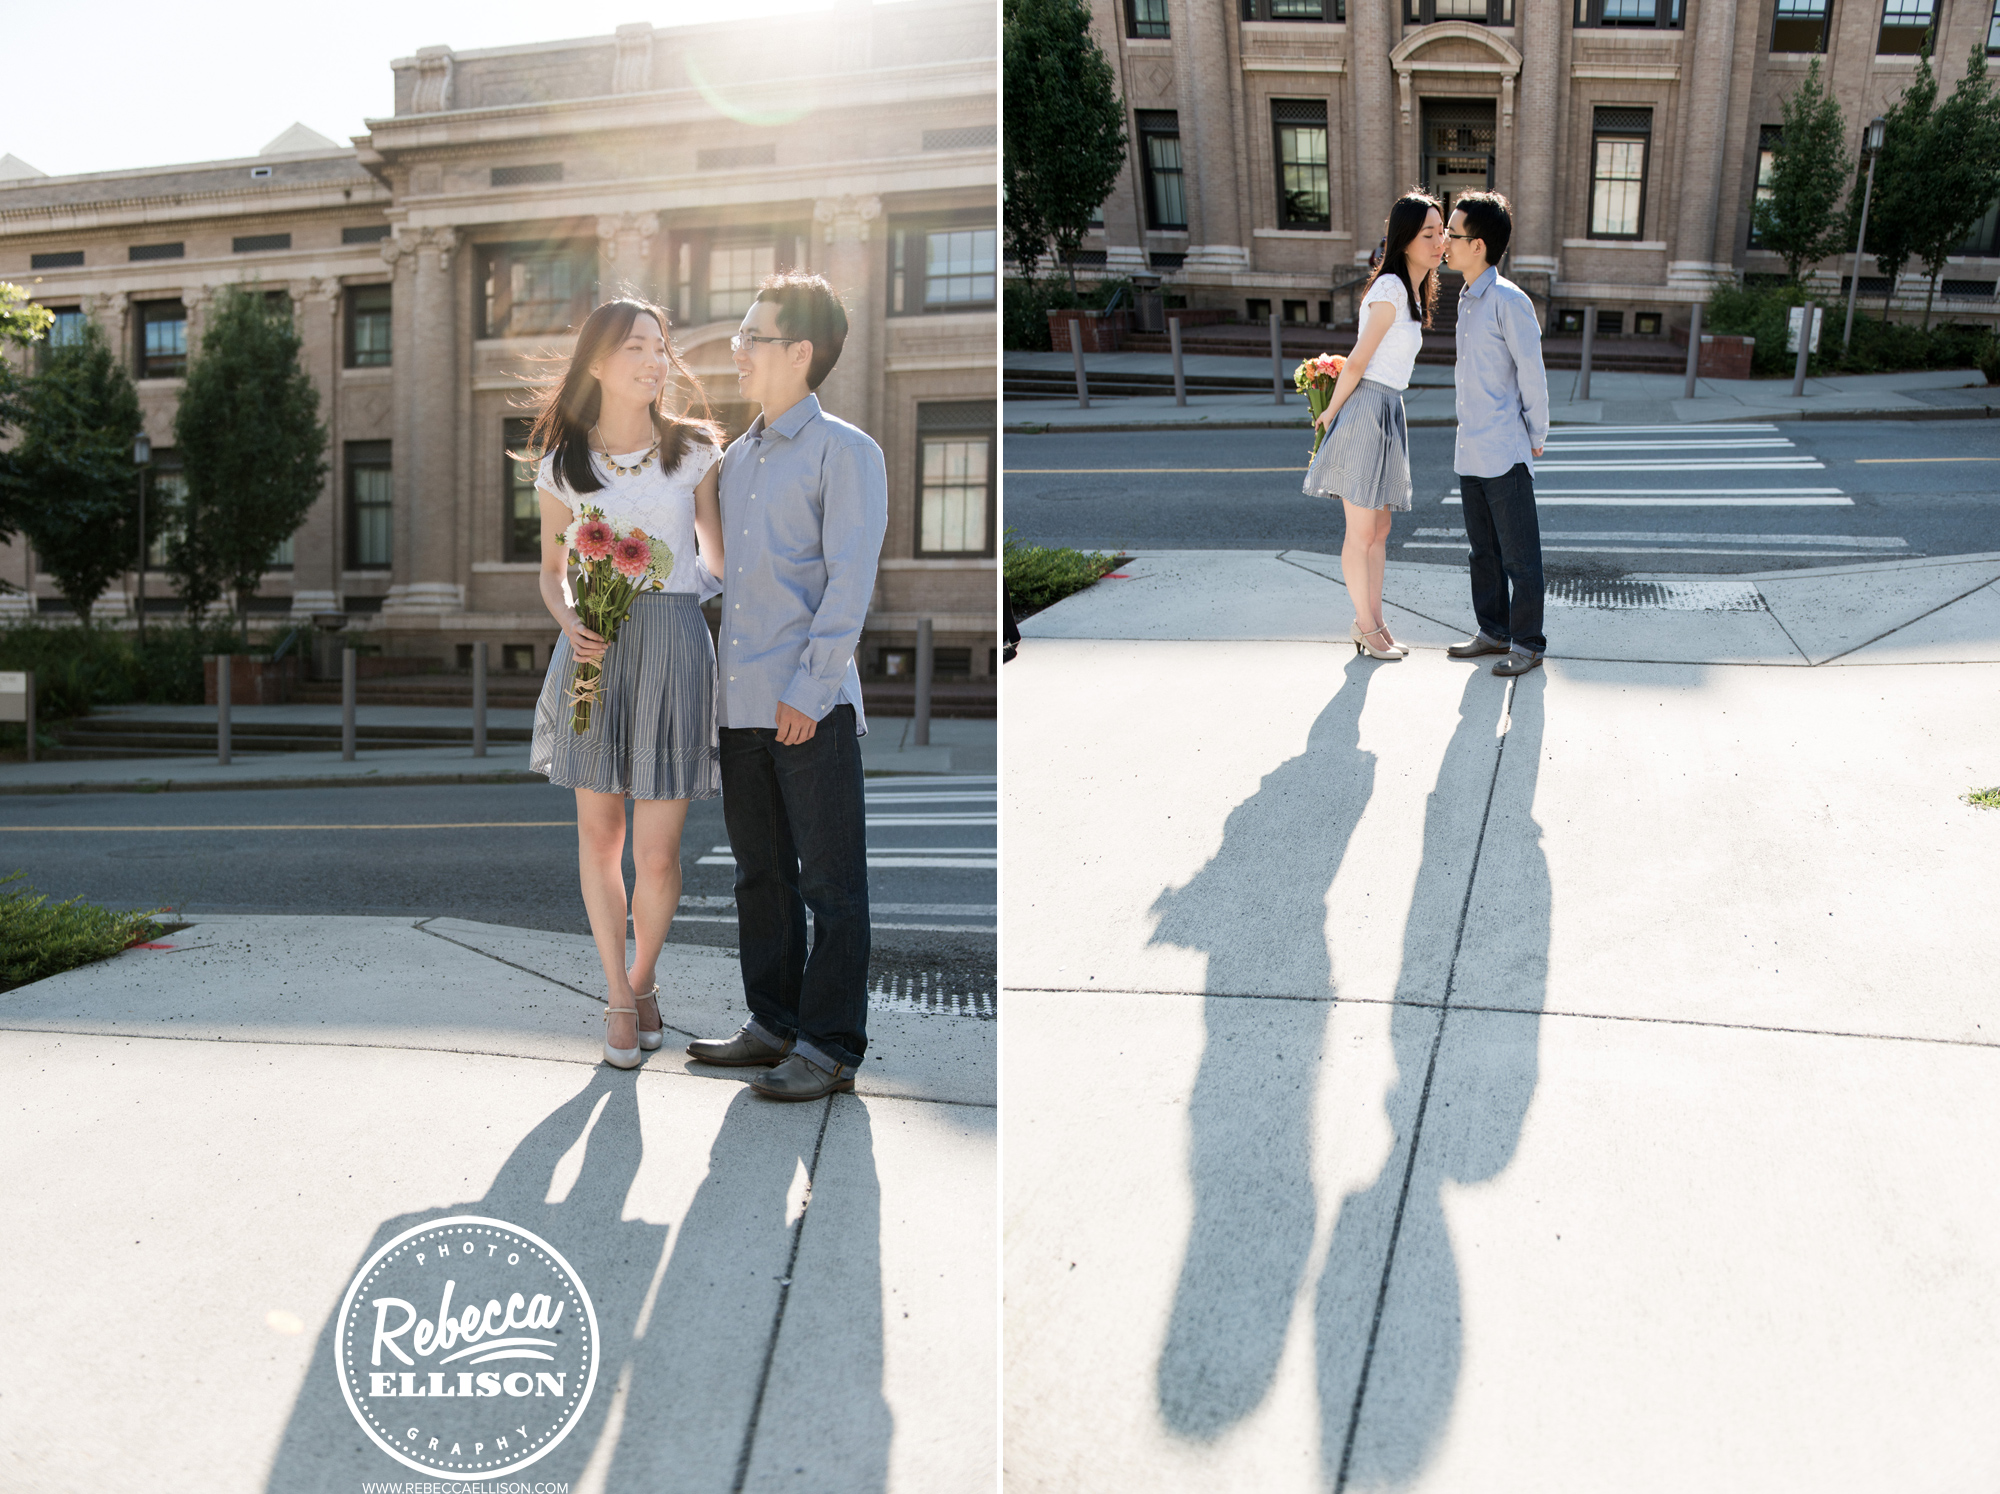 Outdoor engagement photos at University of Washington in front of Suzallo Library photographed by Seattle engagement photographer Rebecca Ellison